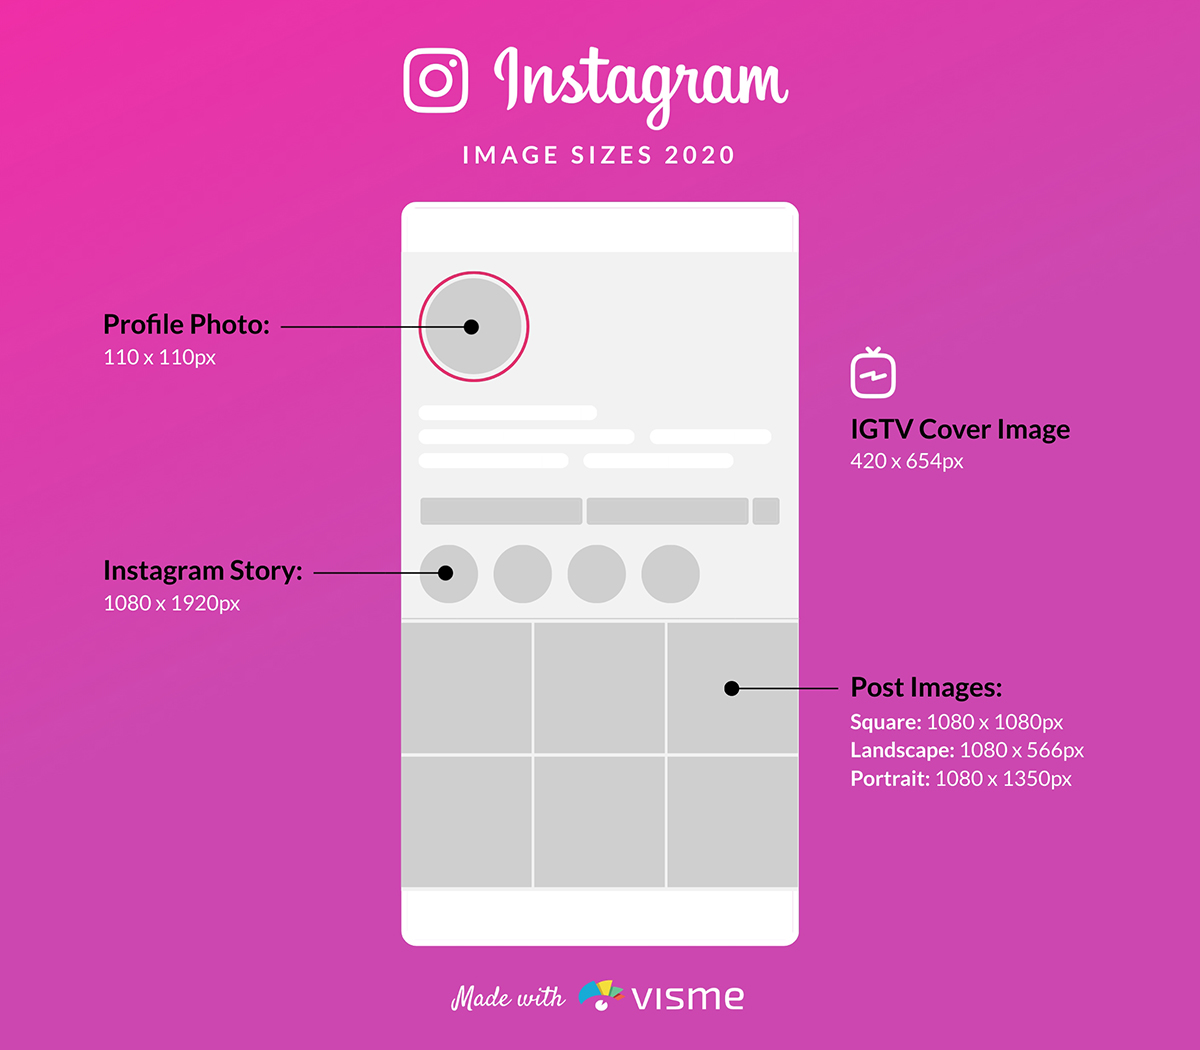 social media image sizes - instagram image sizes